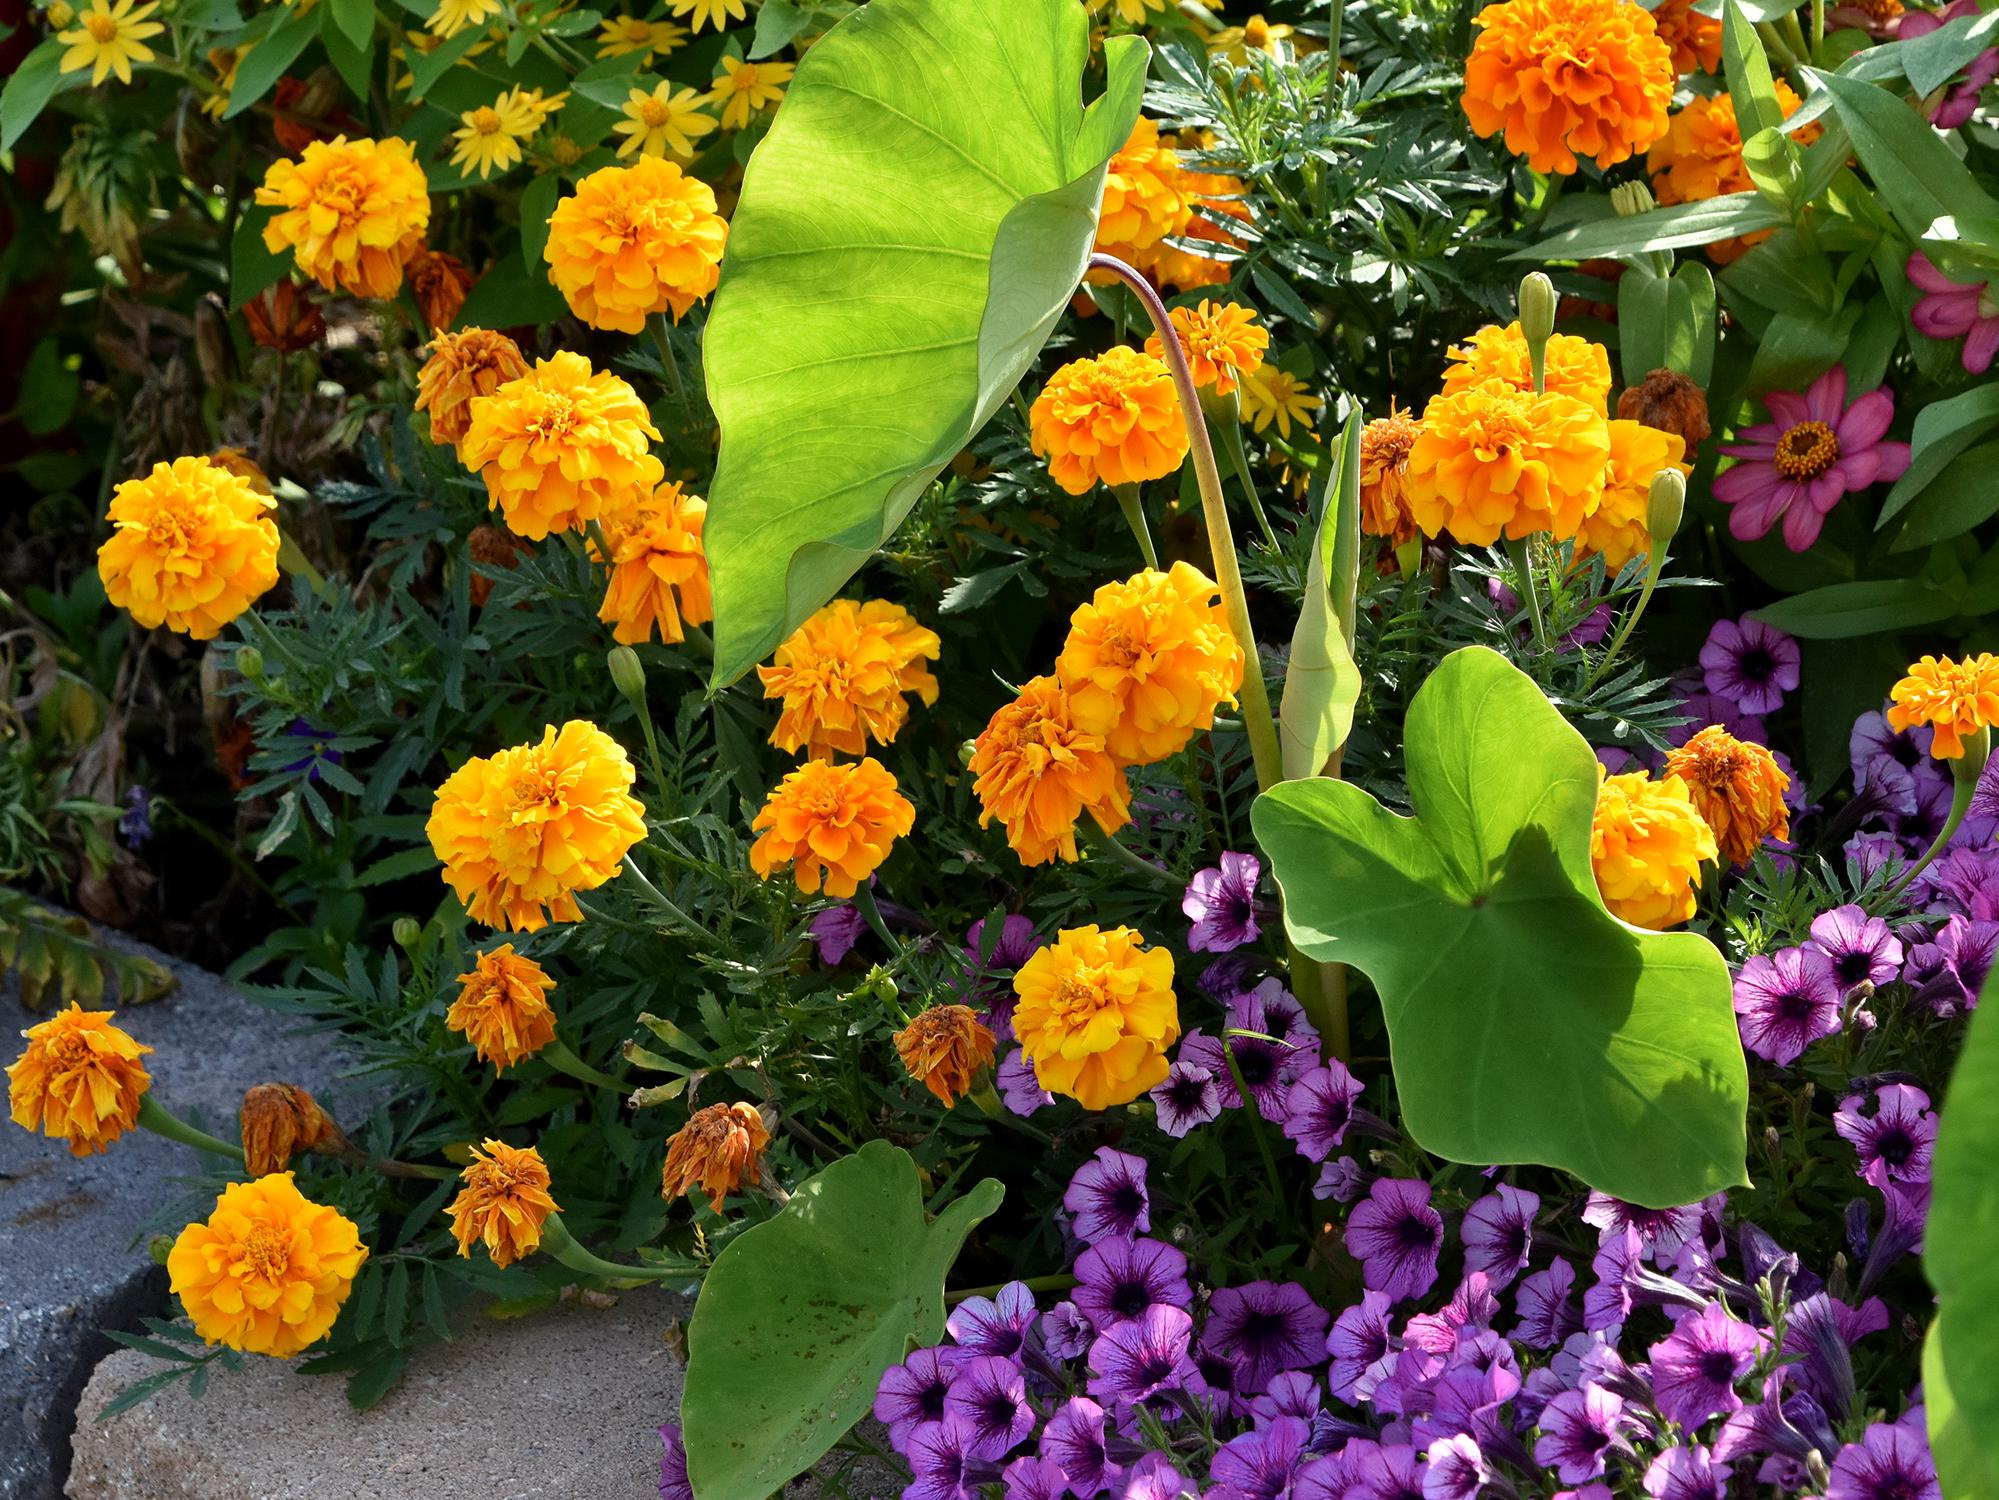 Orange marigolds grow in a bed with purple blooms and green elephant ears.